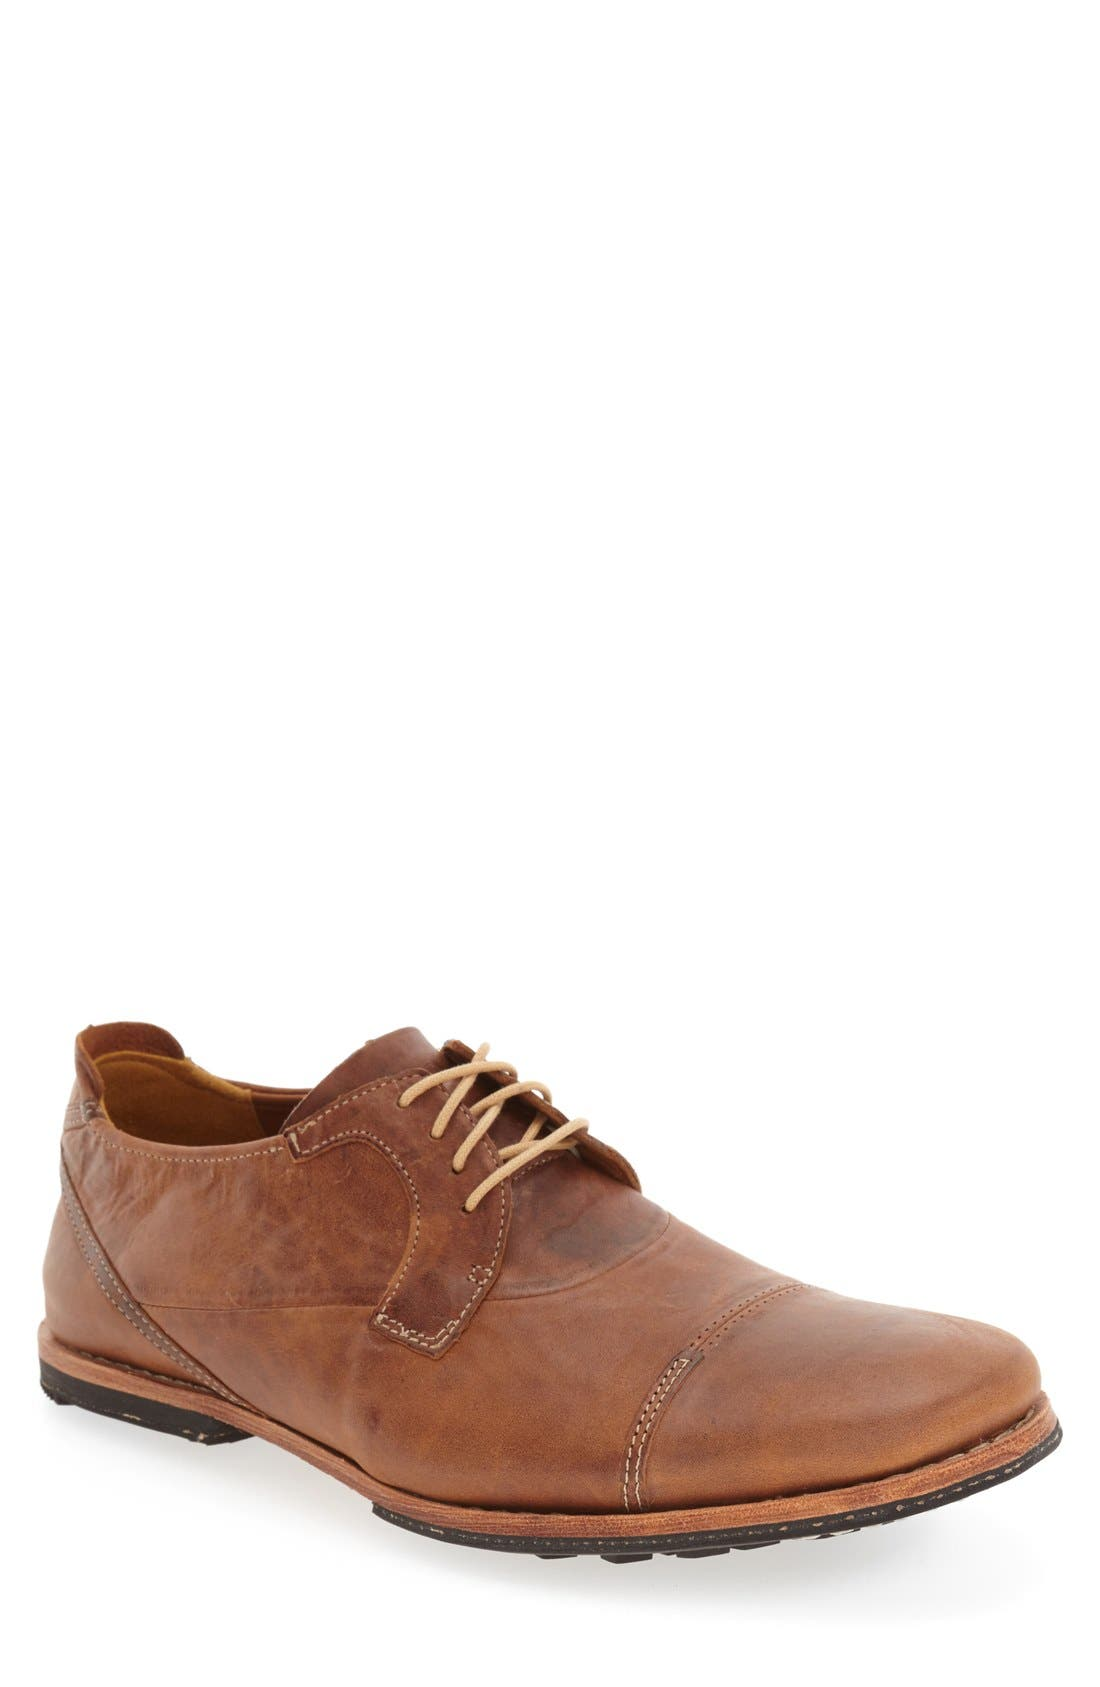 Alternate Image 1 Selected - Timberland 'Wodehouse Lost History' Cap Toe Oxford (Men)